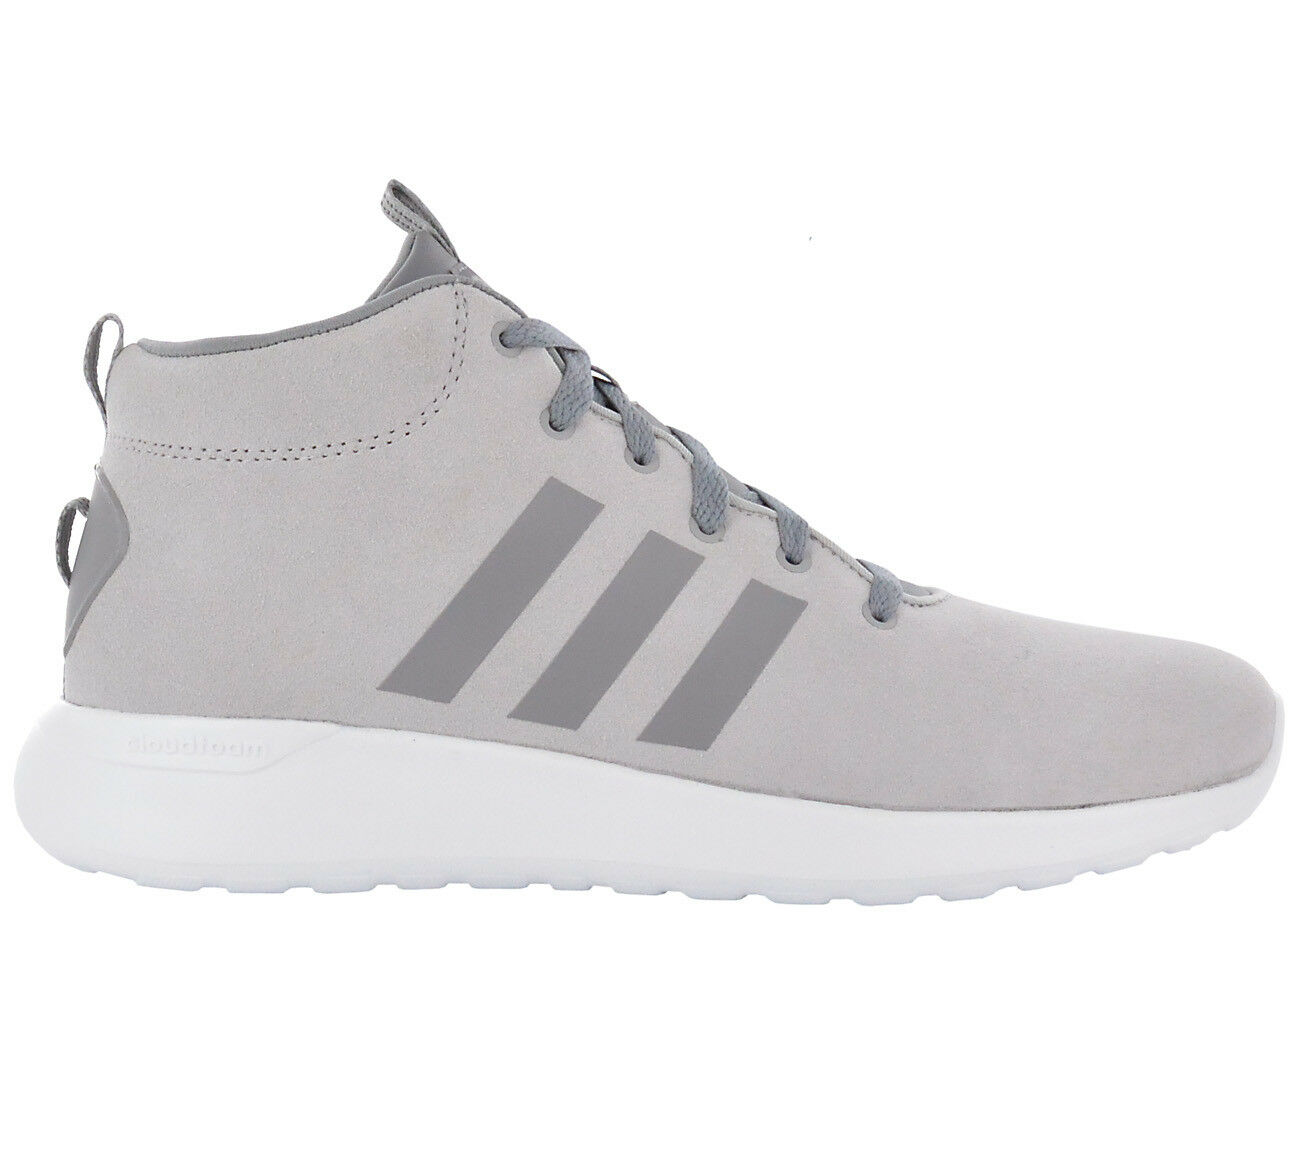 Adidas Mens Trainer CLOUDFOAM Lite Racer Mid CF shoes Grey Leather Sneakers